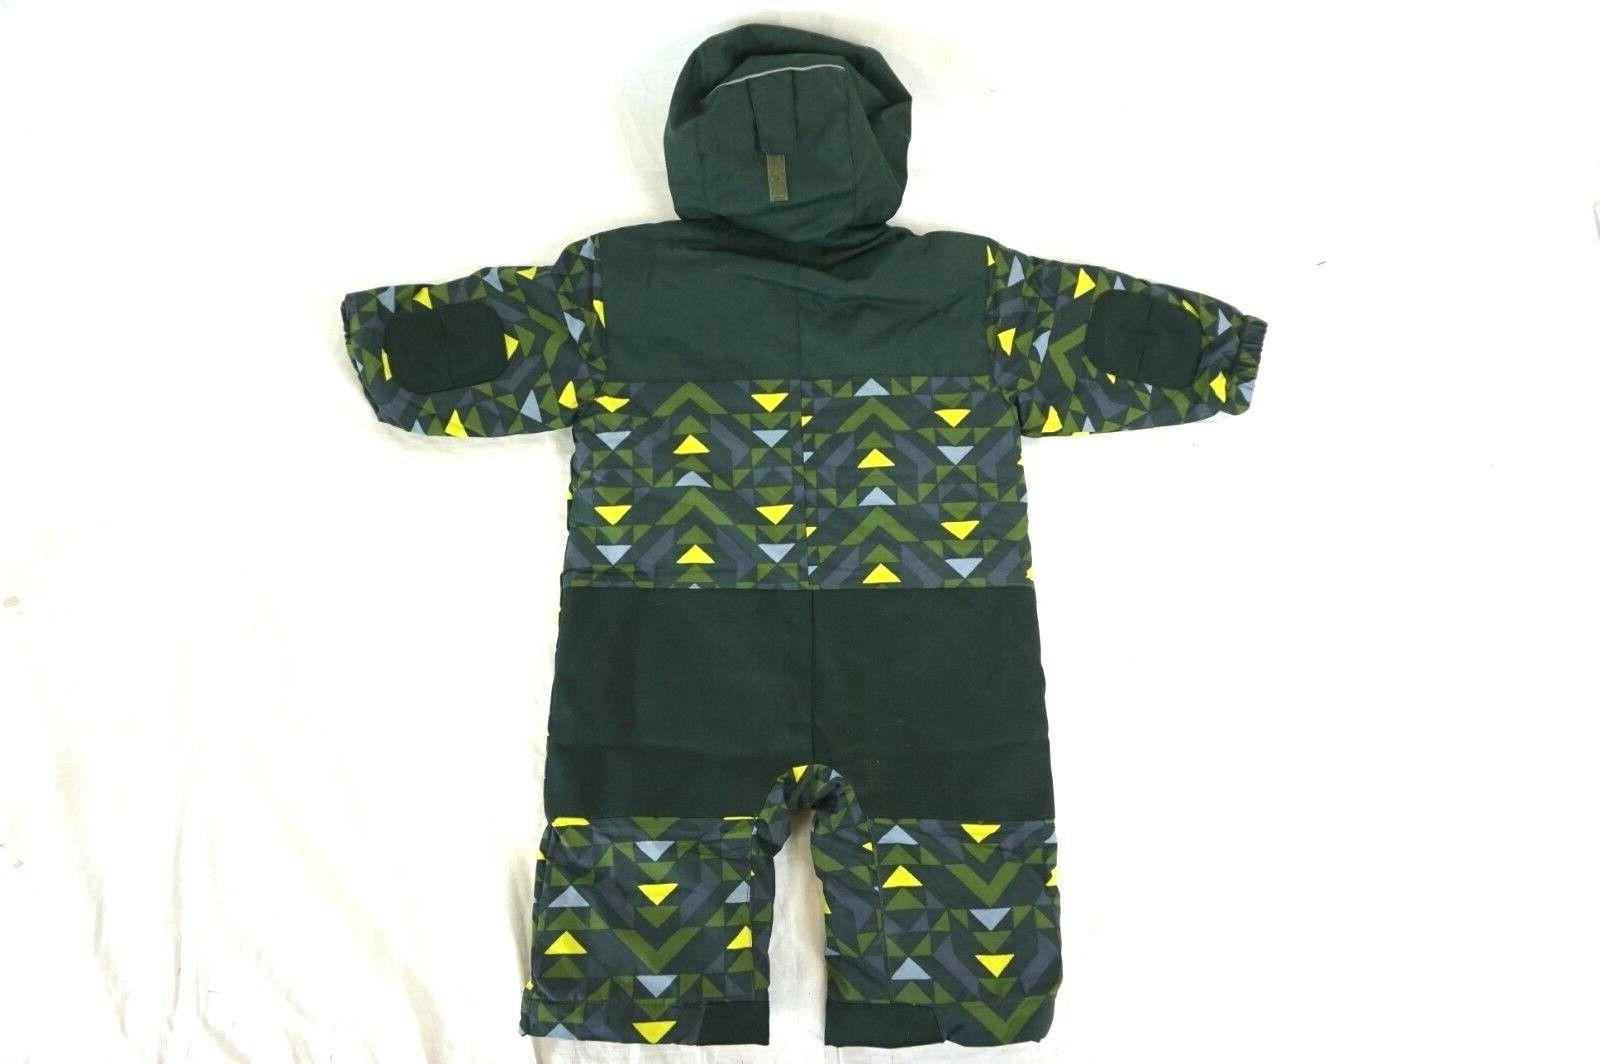 NWT COLUMBIA Infants' Triangles Suit 0-3M,3-6M,6-12M,18-24M